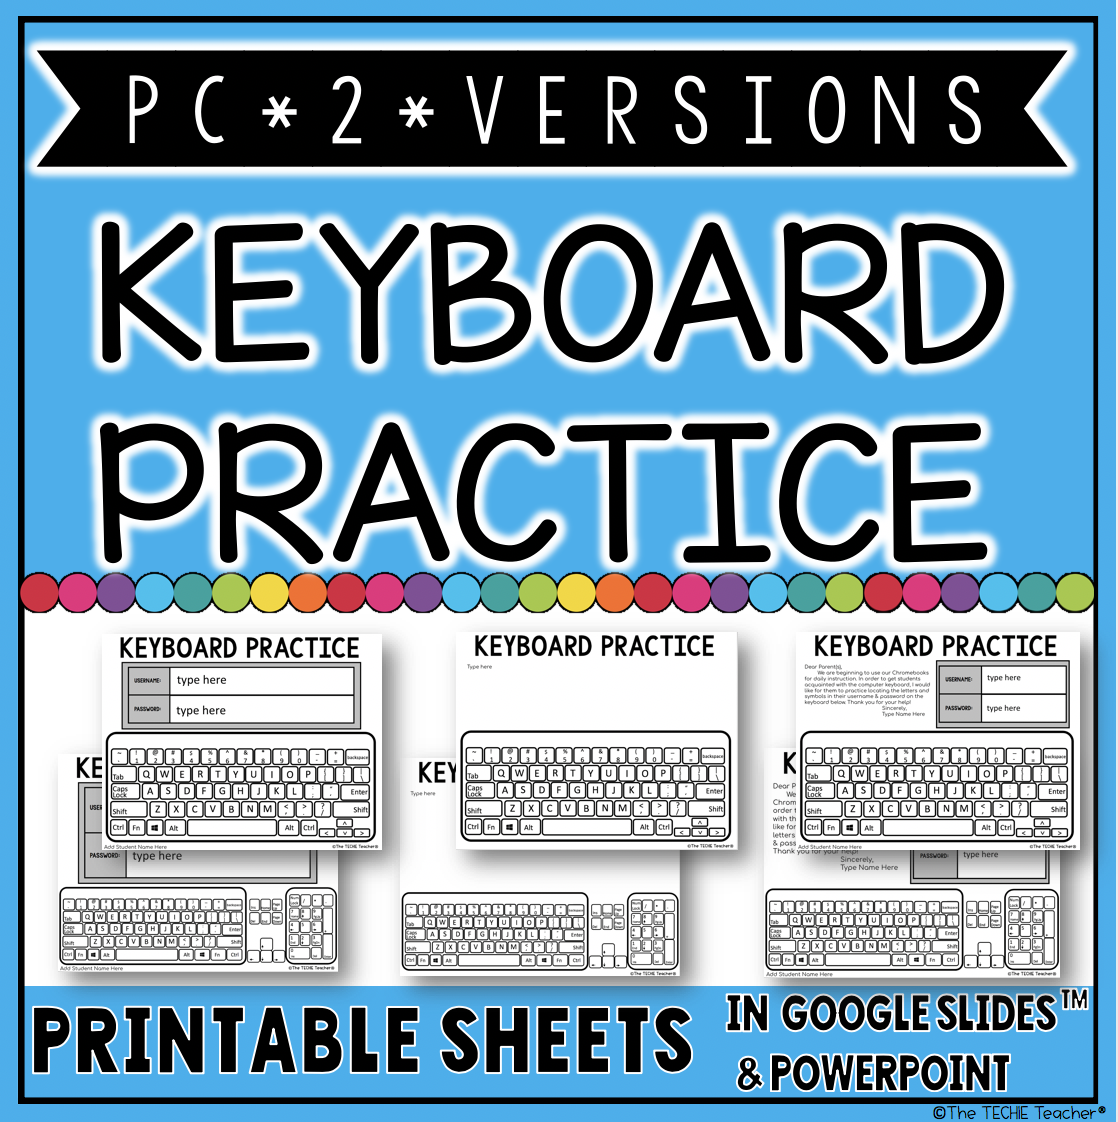 PC Keyboard Practice Sheets for logging in